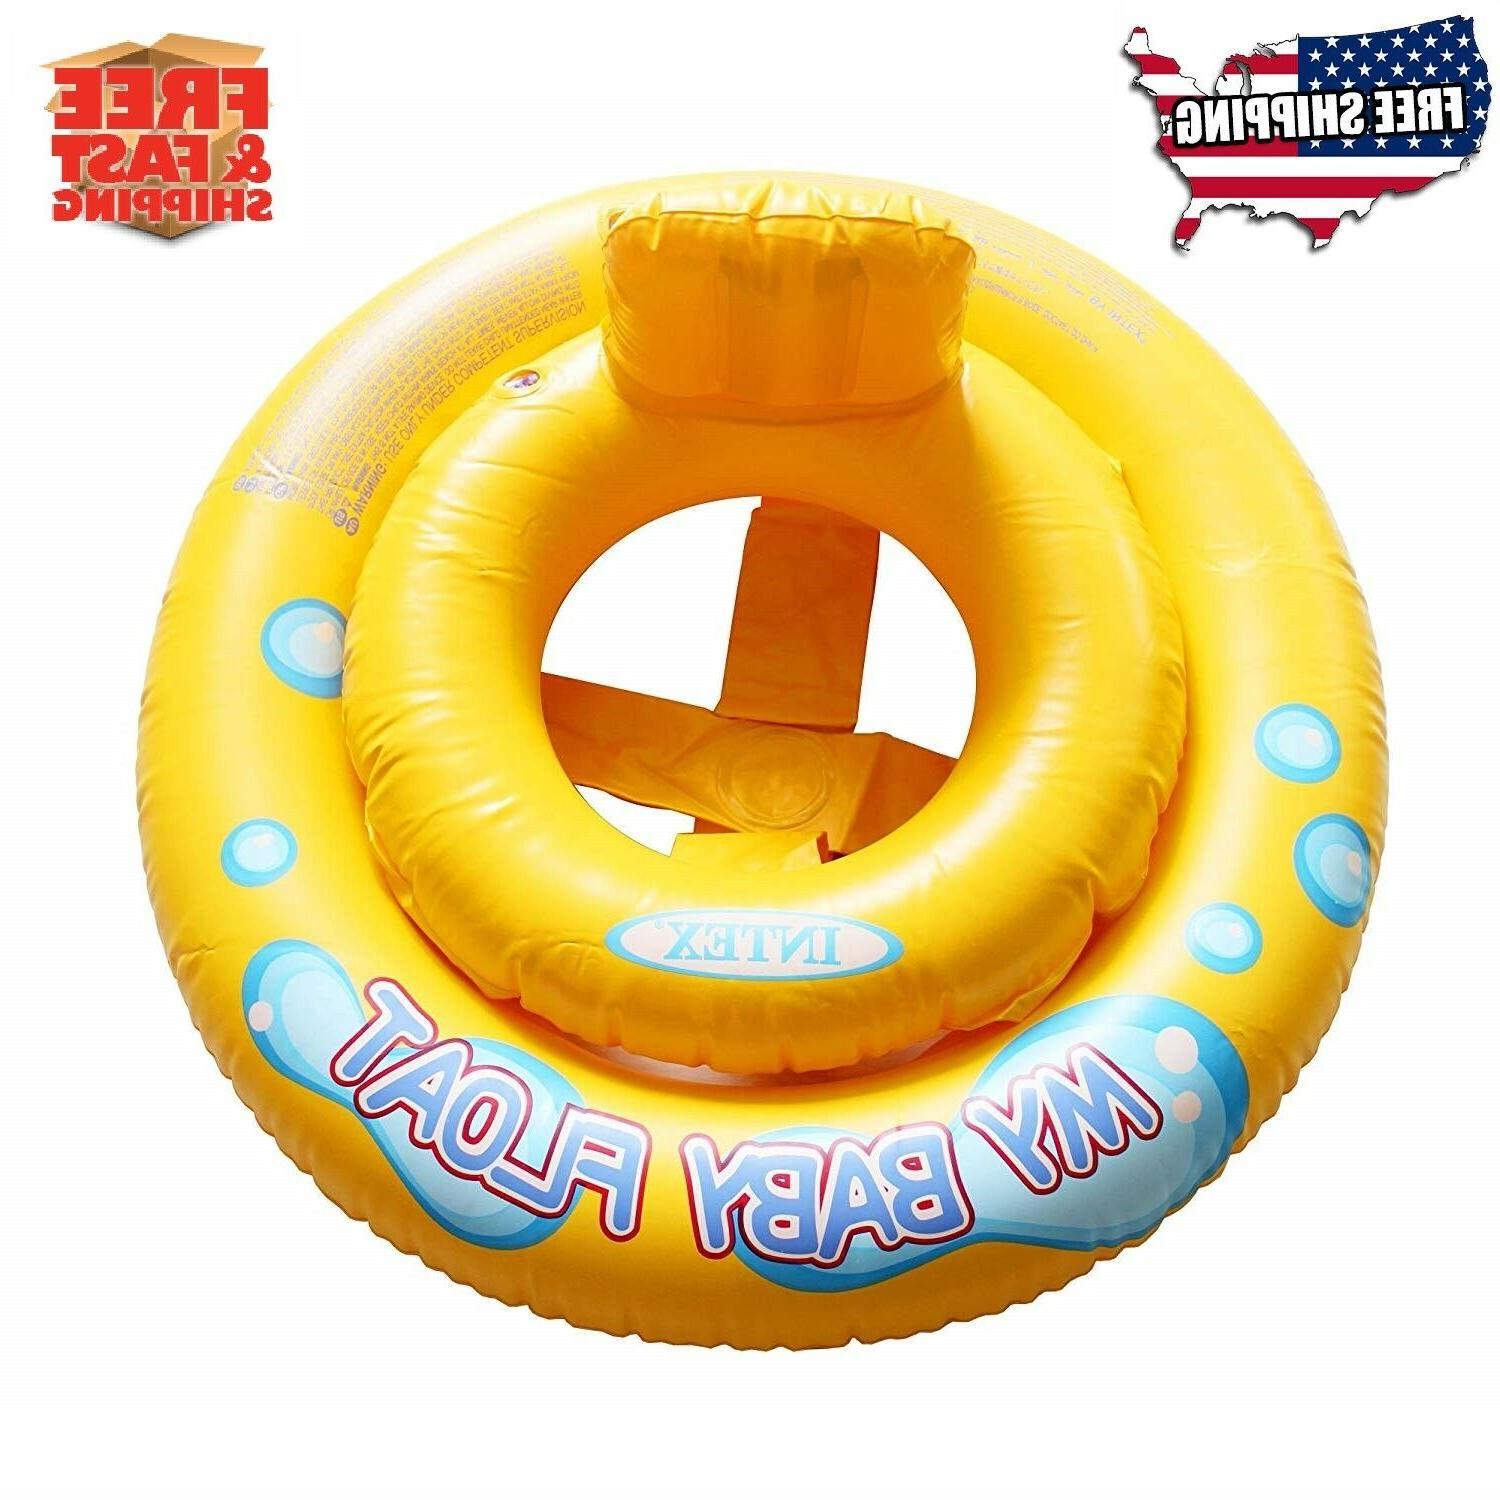 Intex Baby Float 26 in Diameter ages under years old NEW!